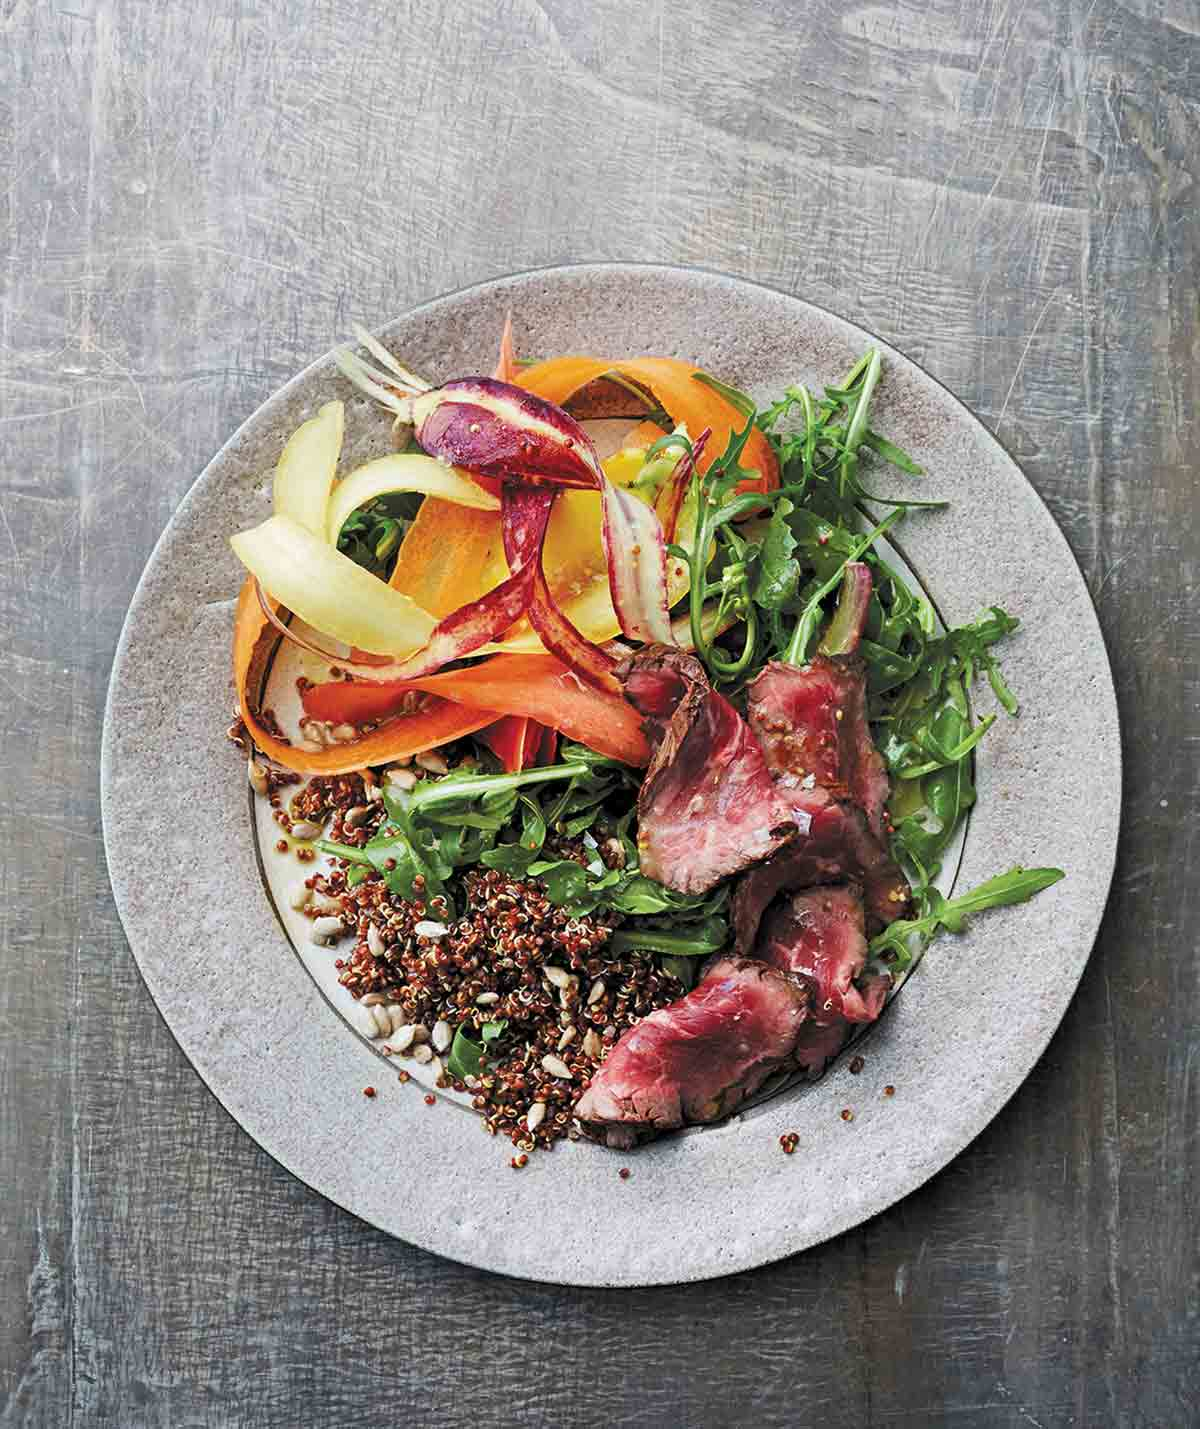 A grey plate topped with steak and quinoa salad with shaved carrots and mustard vinaigrette.